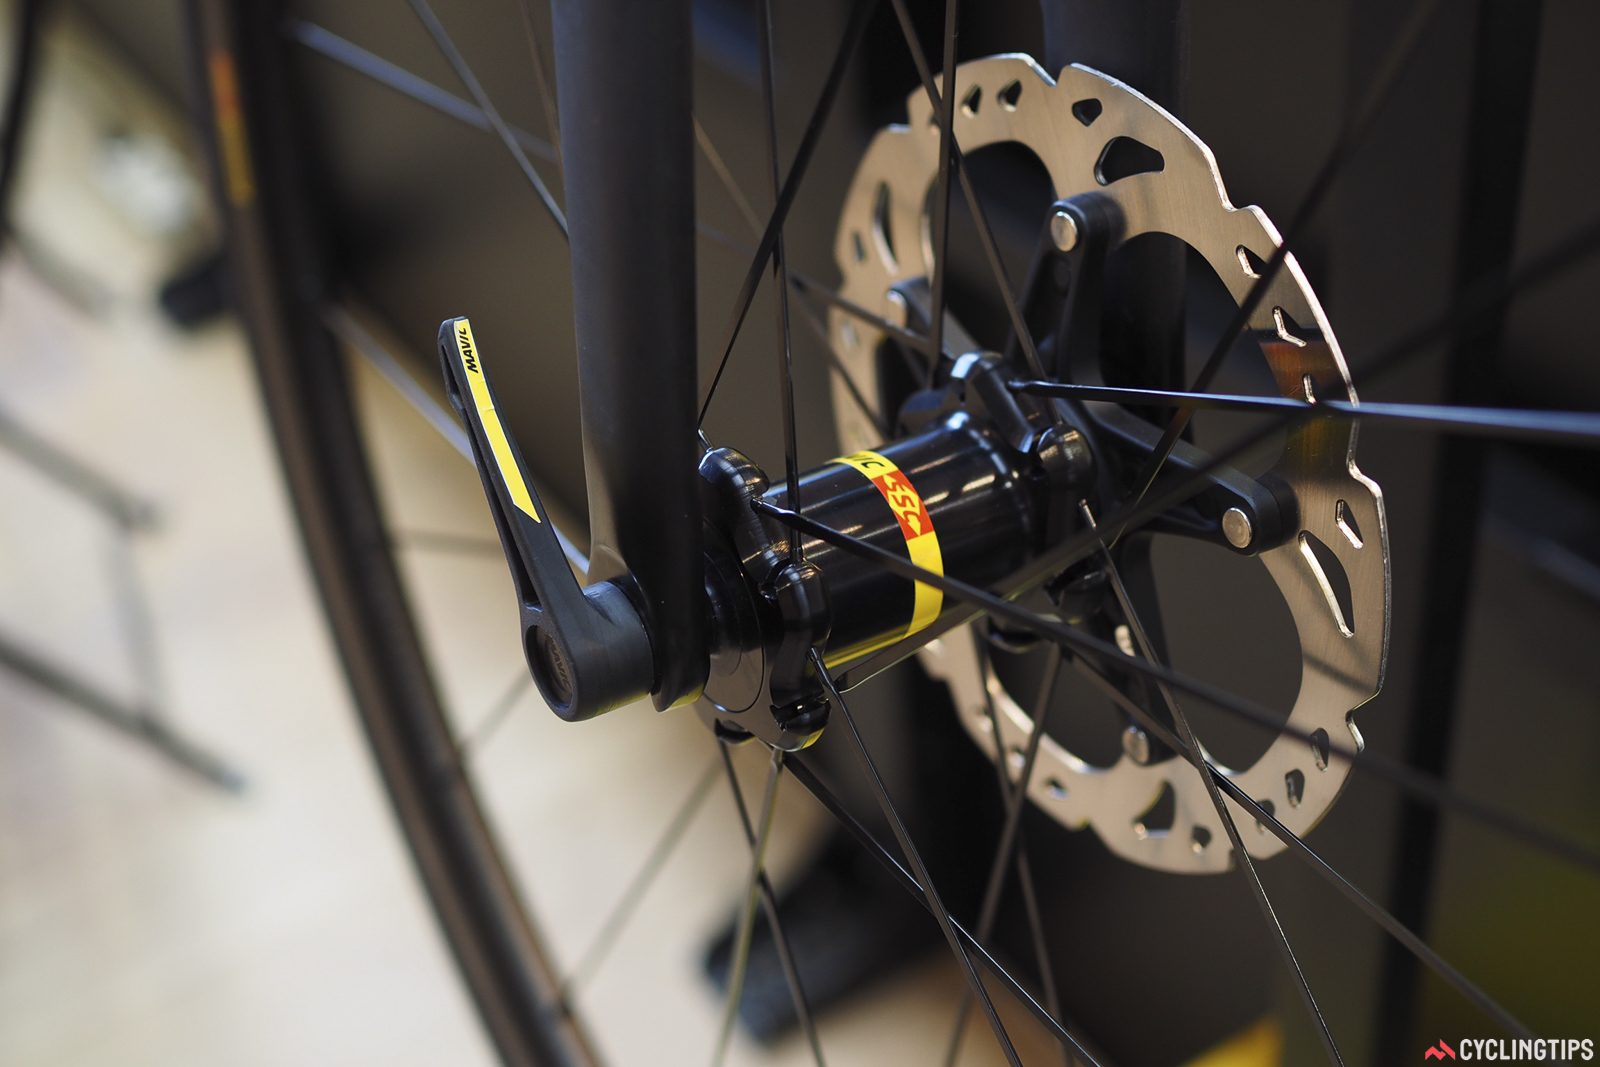 Mavic has licensed the Speed Release quick-release thru-axle design, which will be included as standard equipment on some Corratec bikes for model year 2018. It's quite a slick system, quick to use, and seemingly safer than traditional quick-releases. Photo: James Huang.